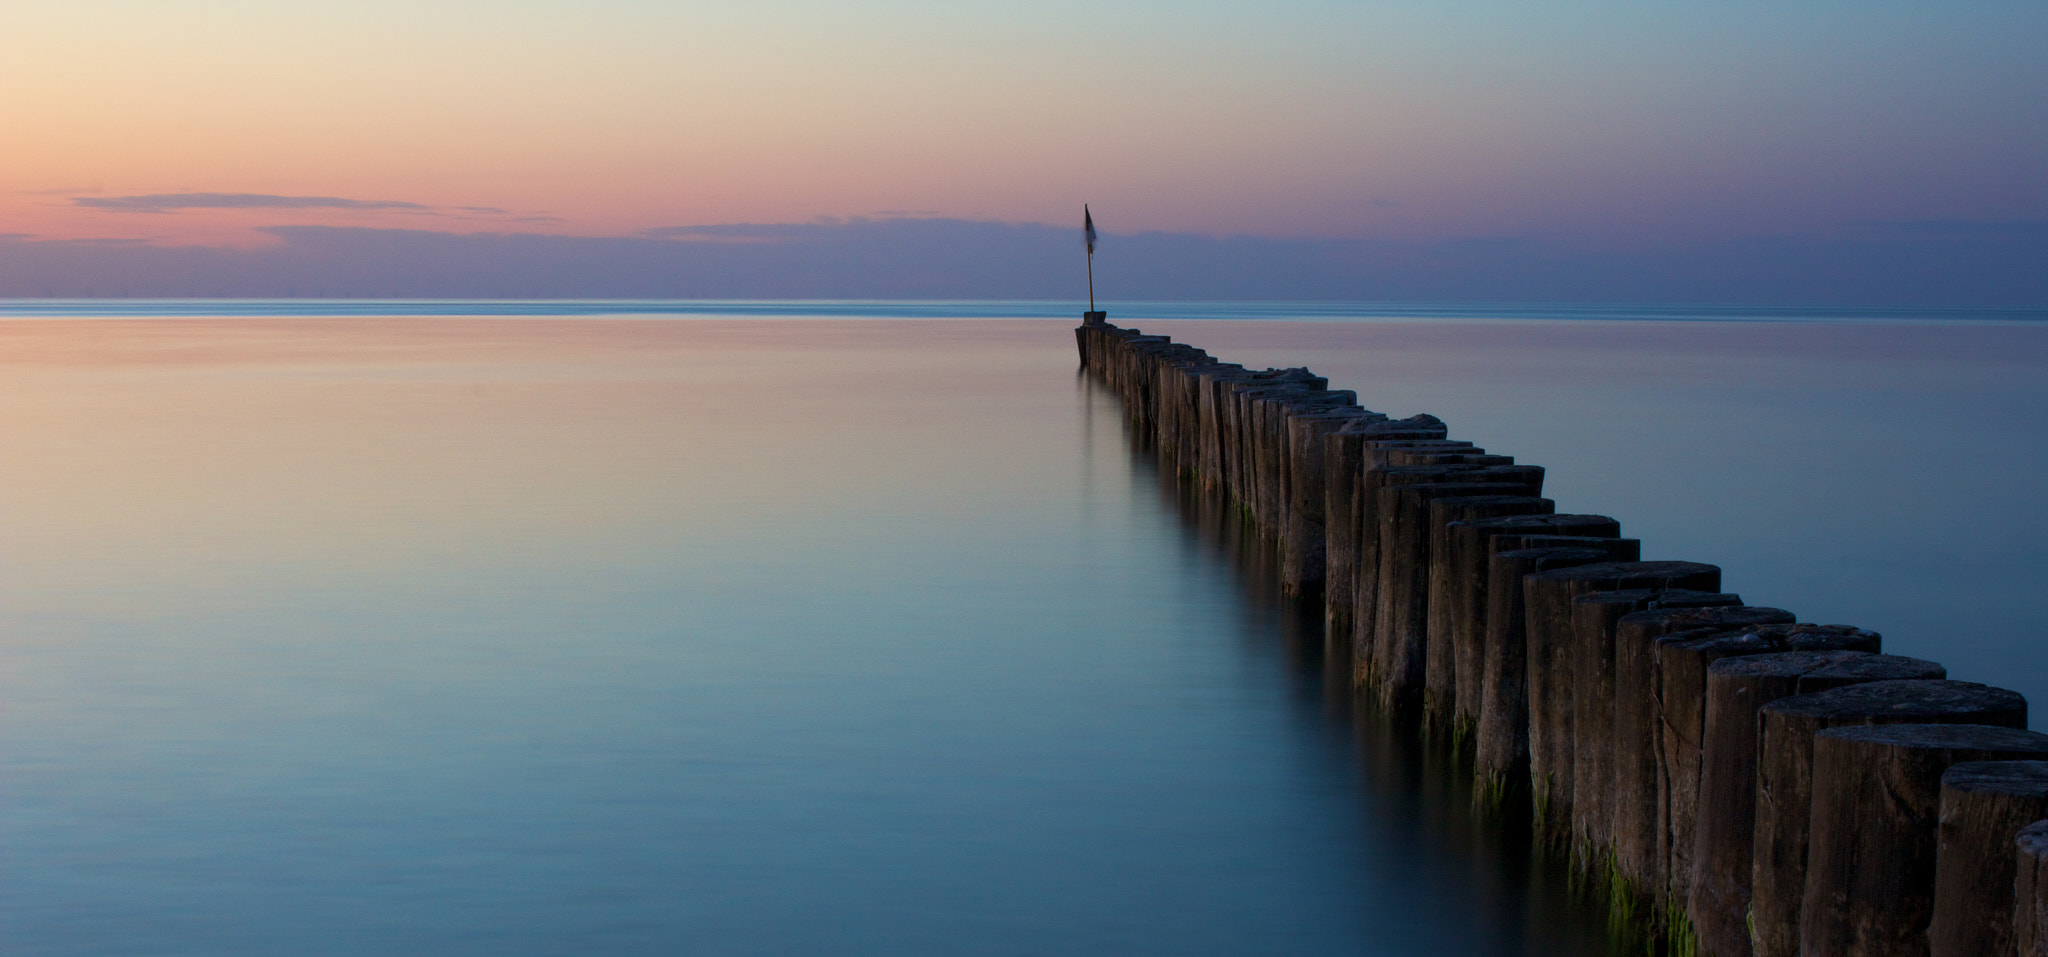 Photograph Buhne auf Zingst by Andreas Obermeier on 500px